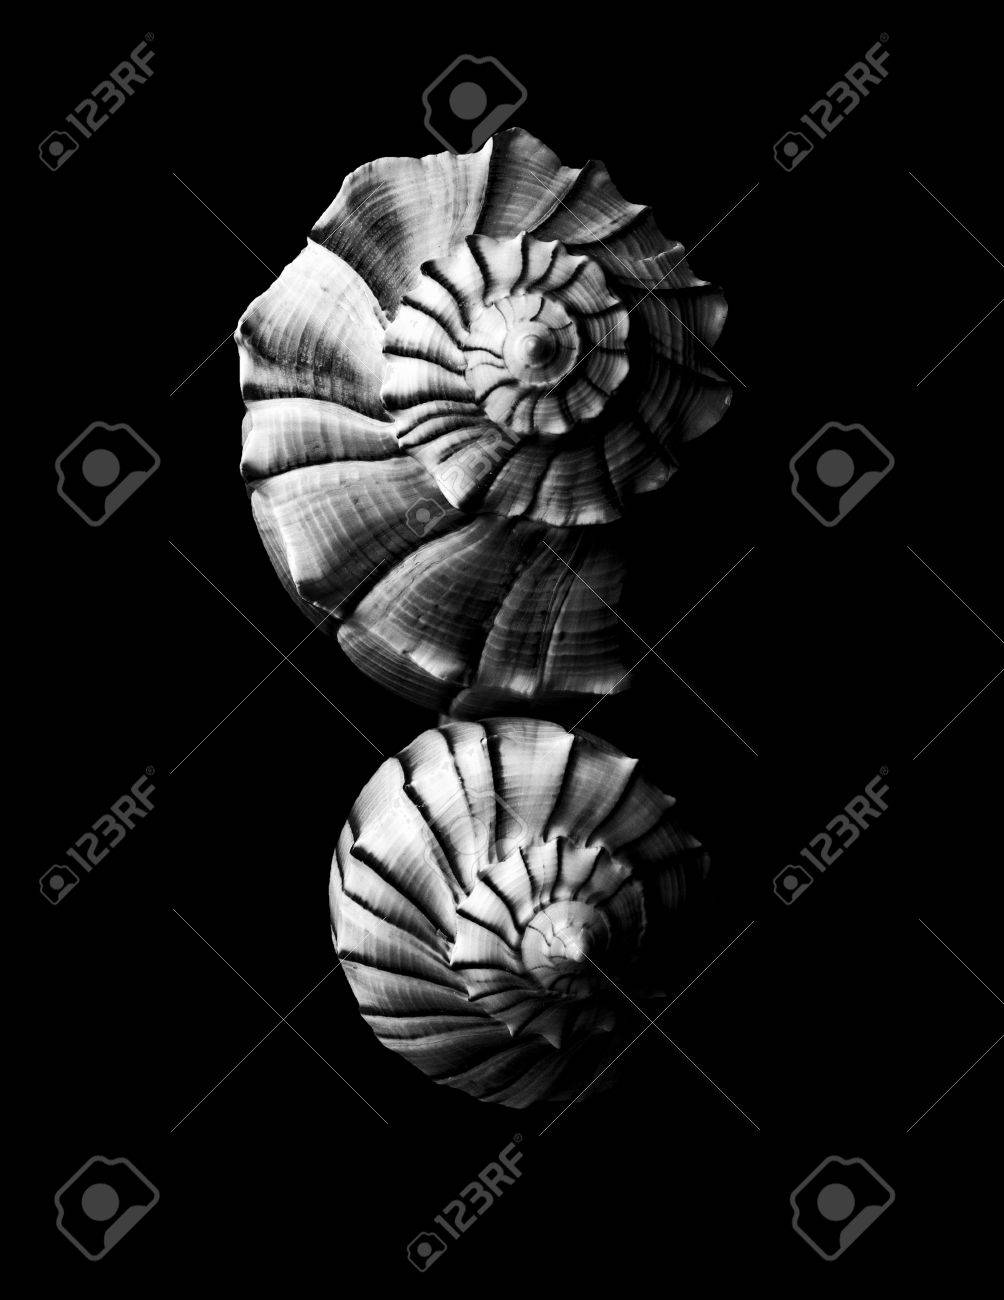 Black and white seashell background in nature